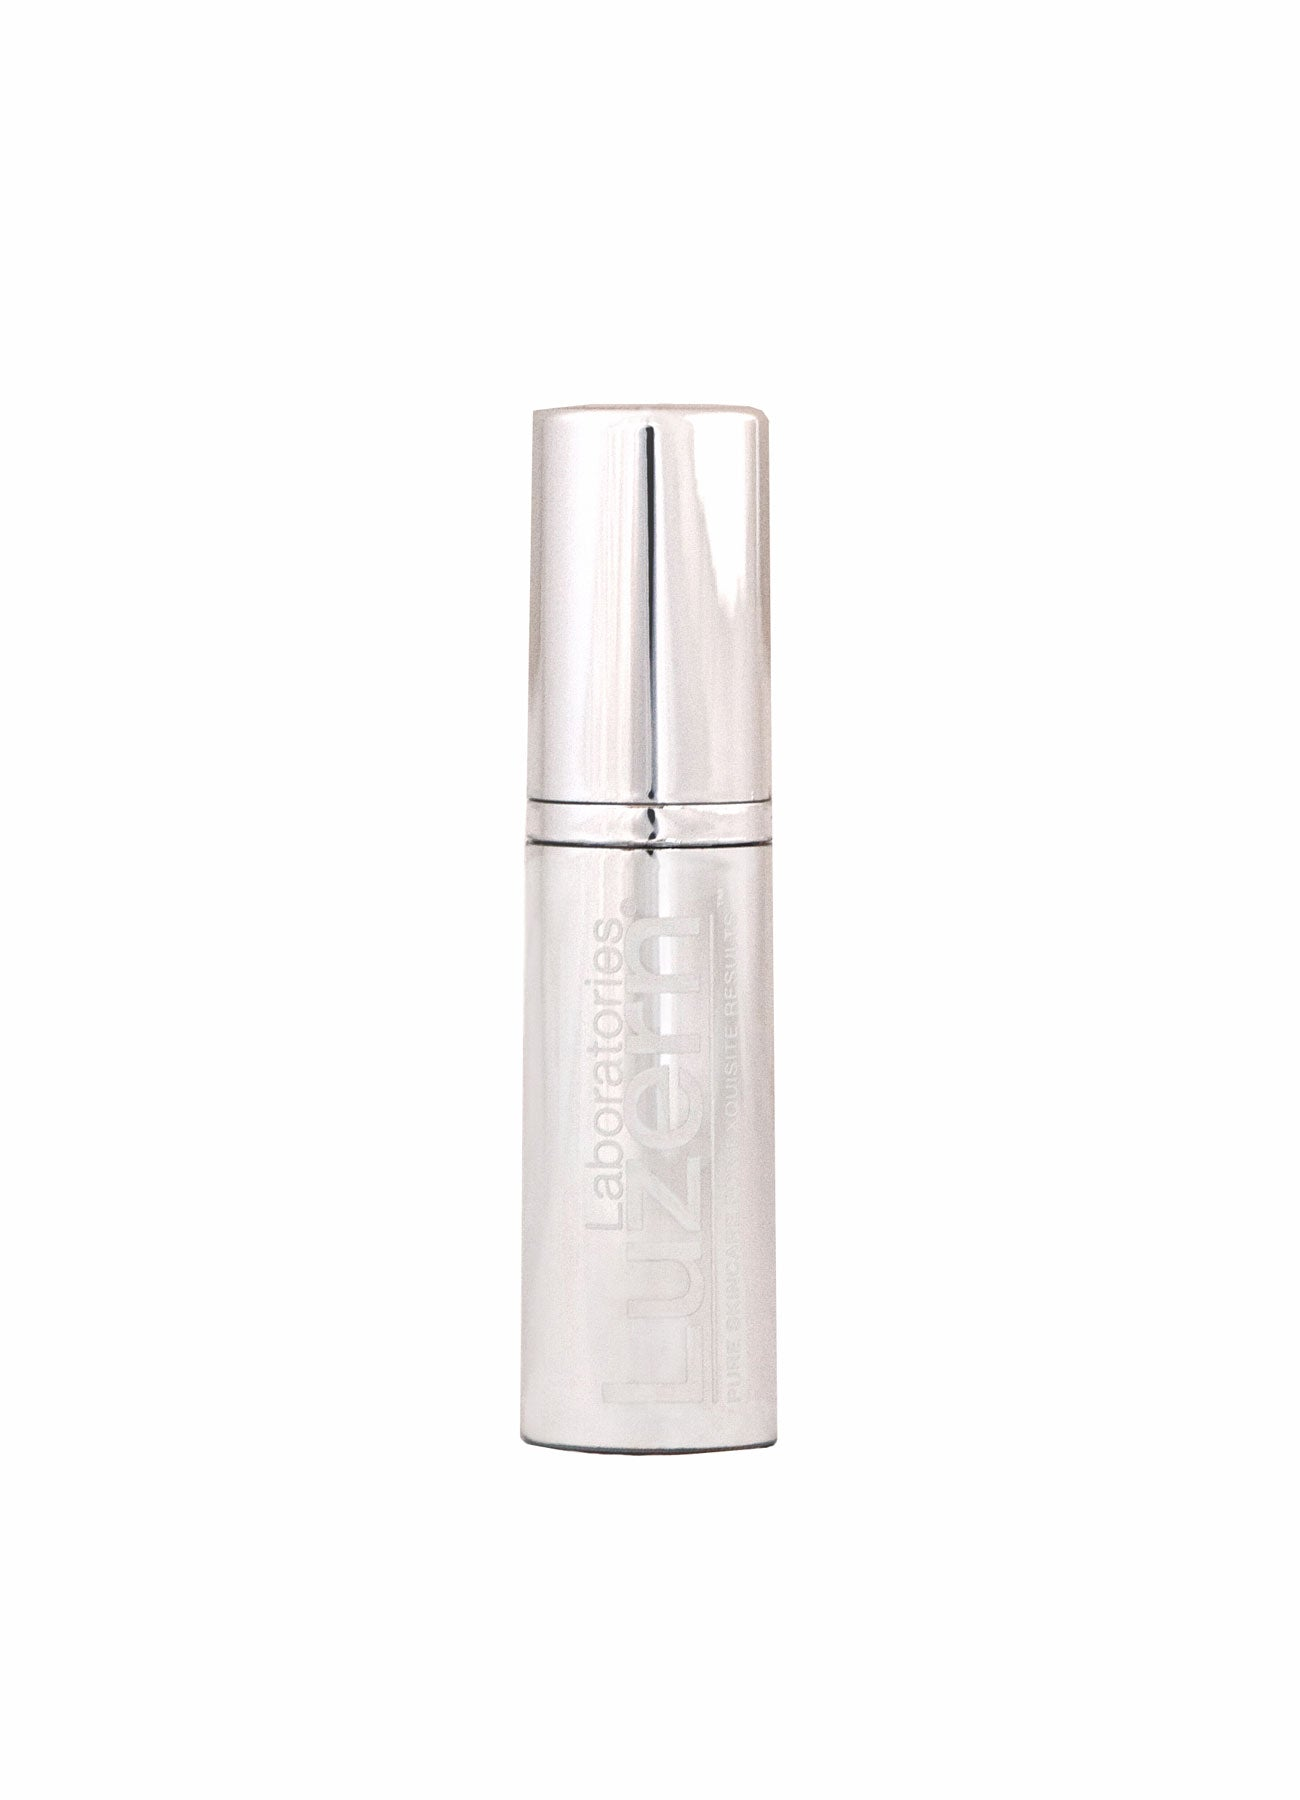 Luzern Serum ReHydrate Mini